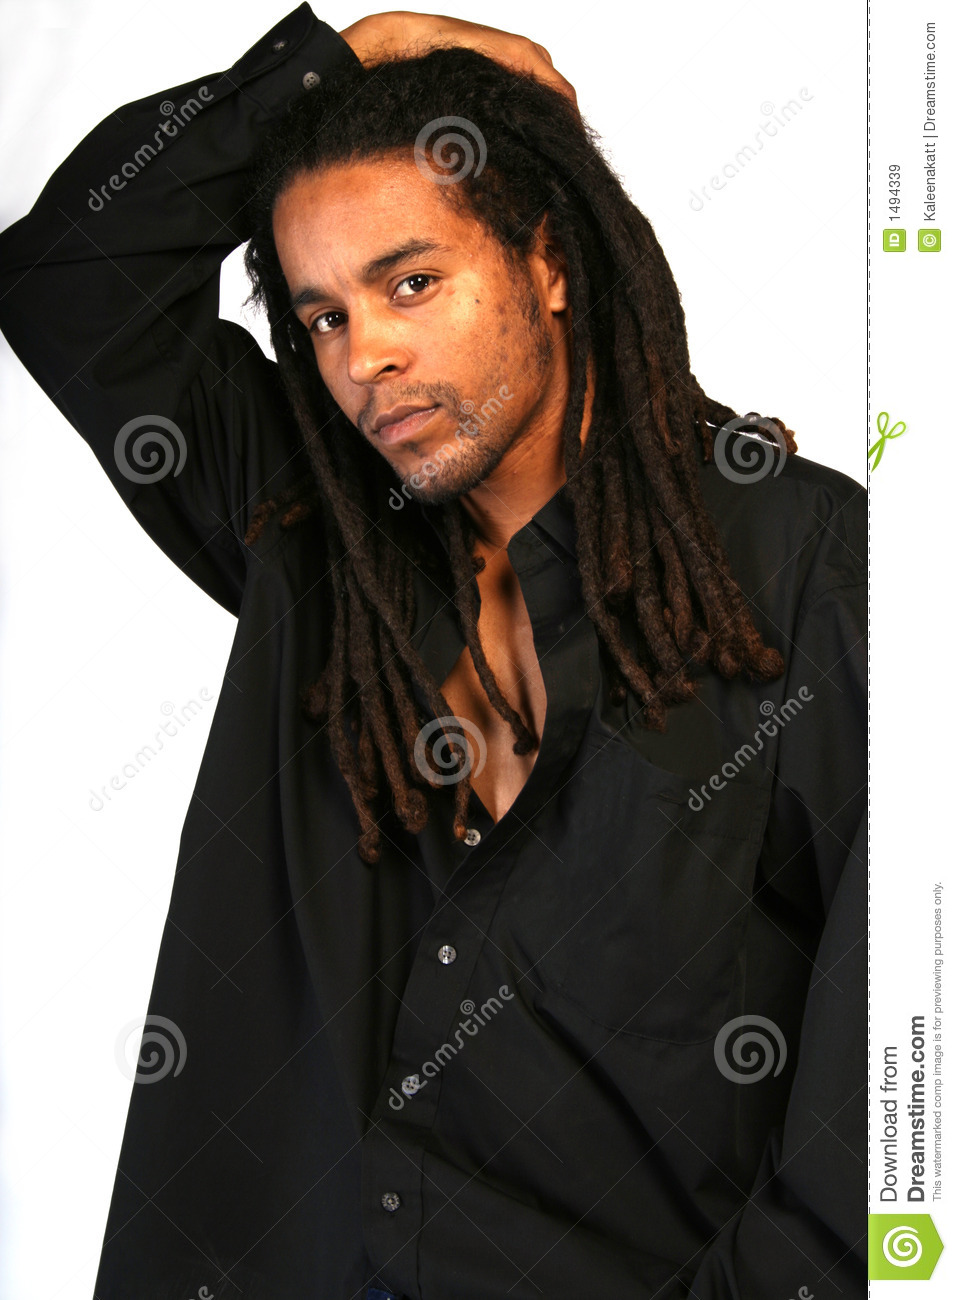 black man with dreadlocks stock image image of matted 1494339